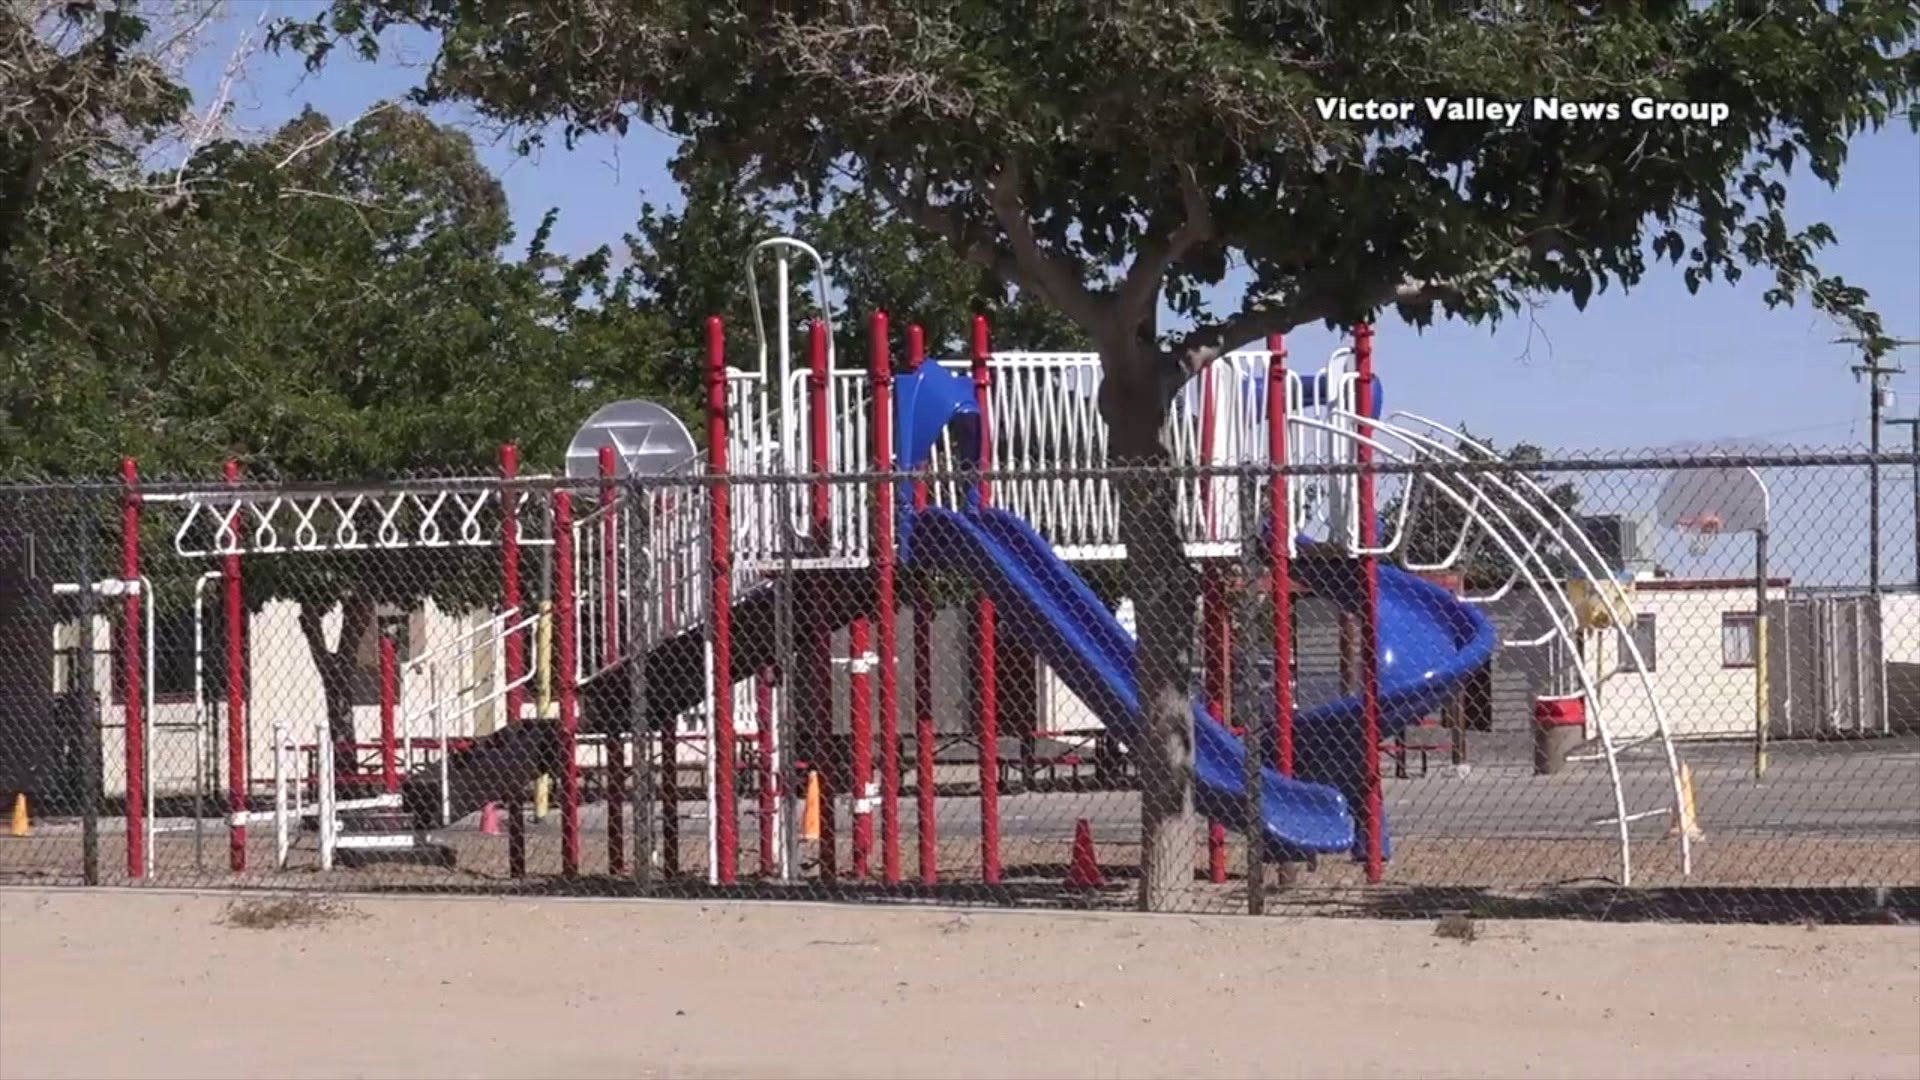 The playground at Baldy Mesa Elementary School is seen on May 20, 2019. (Credit: Victor Valley News Group)